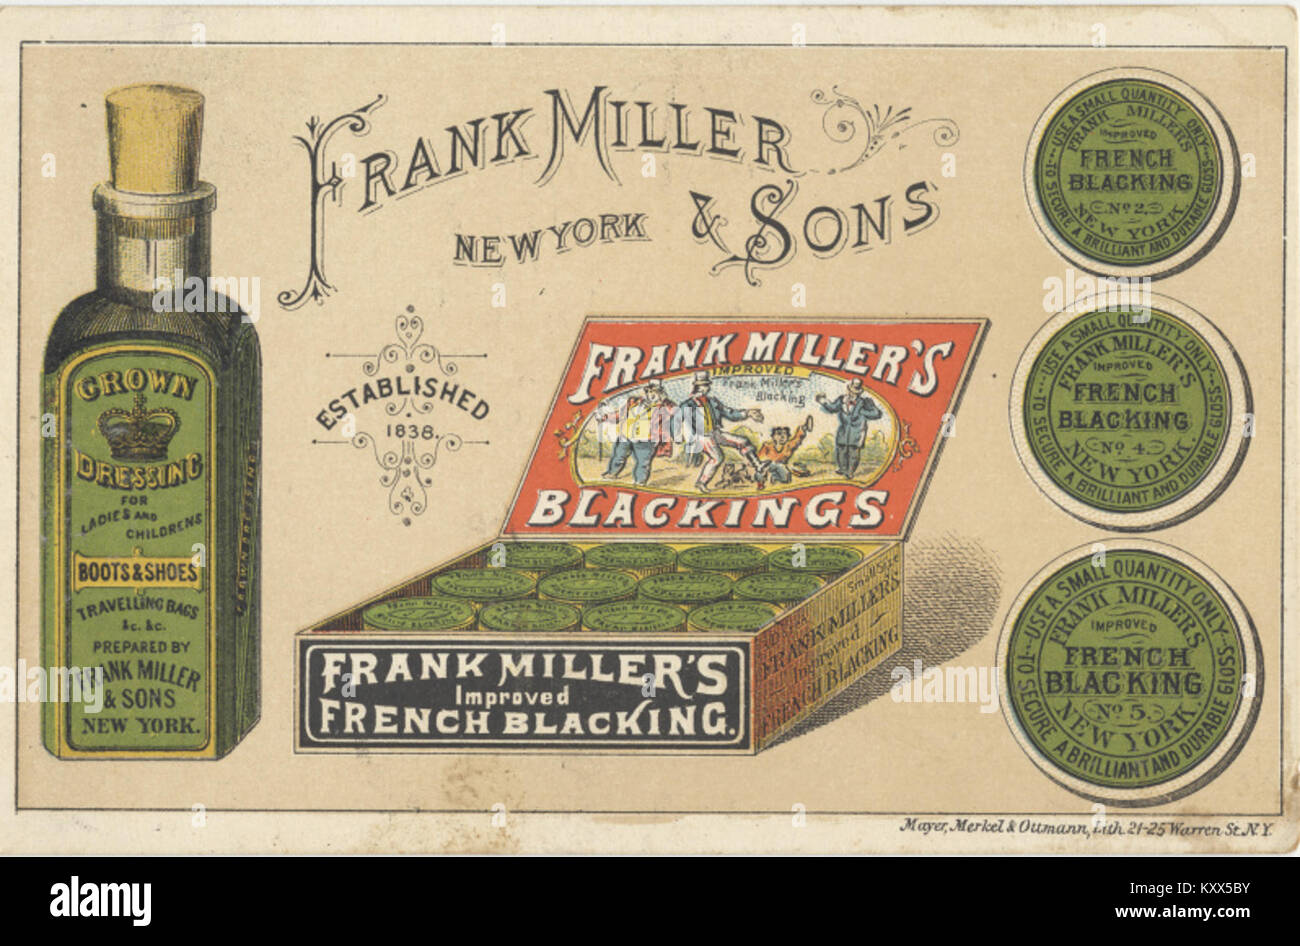 Miller And Sons >> Frank Miller And Sons Estab 1838 3092901037 Stock Photo